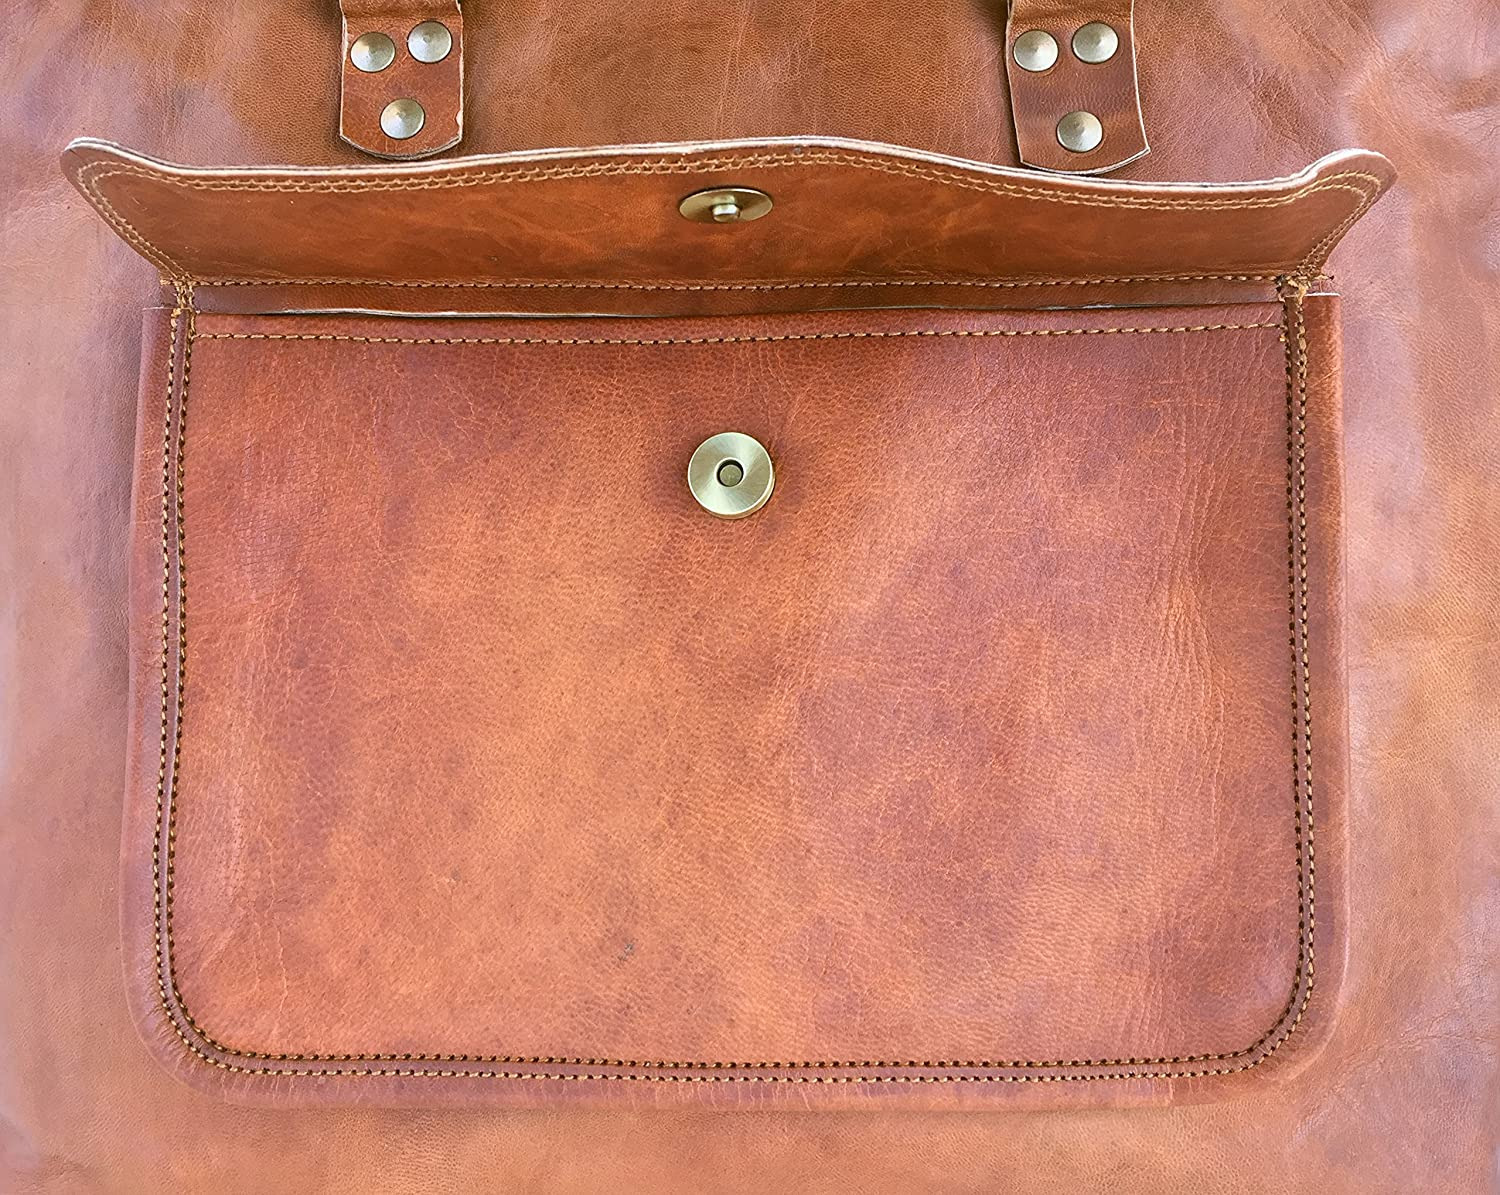 Womens genuine leather top handle tote purse bag 15 inch with zipper